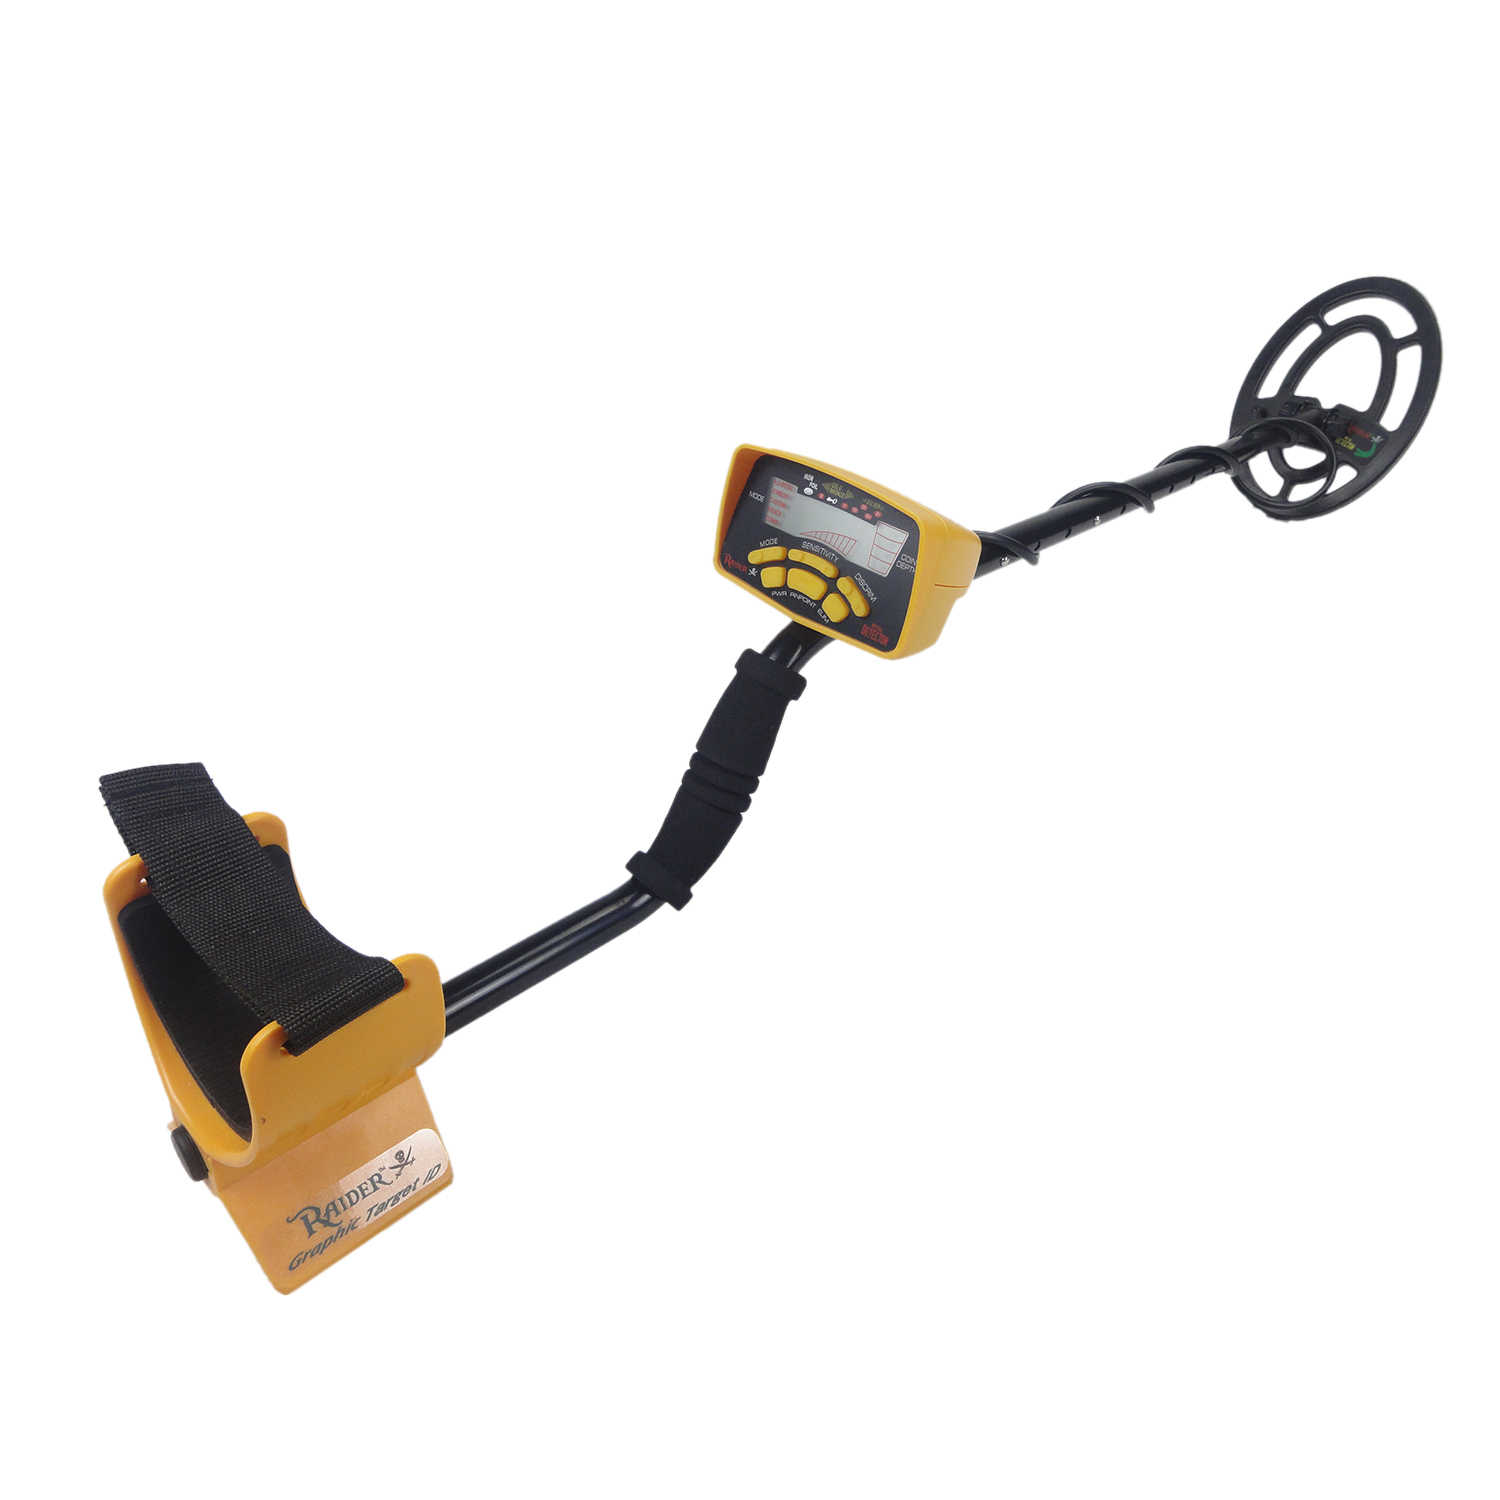 Schema Elettrico Per Metal Detector : Detail feedback questions about md 3010ii gold detector md3010ii